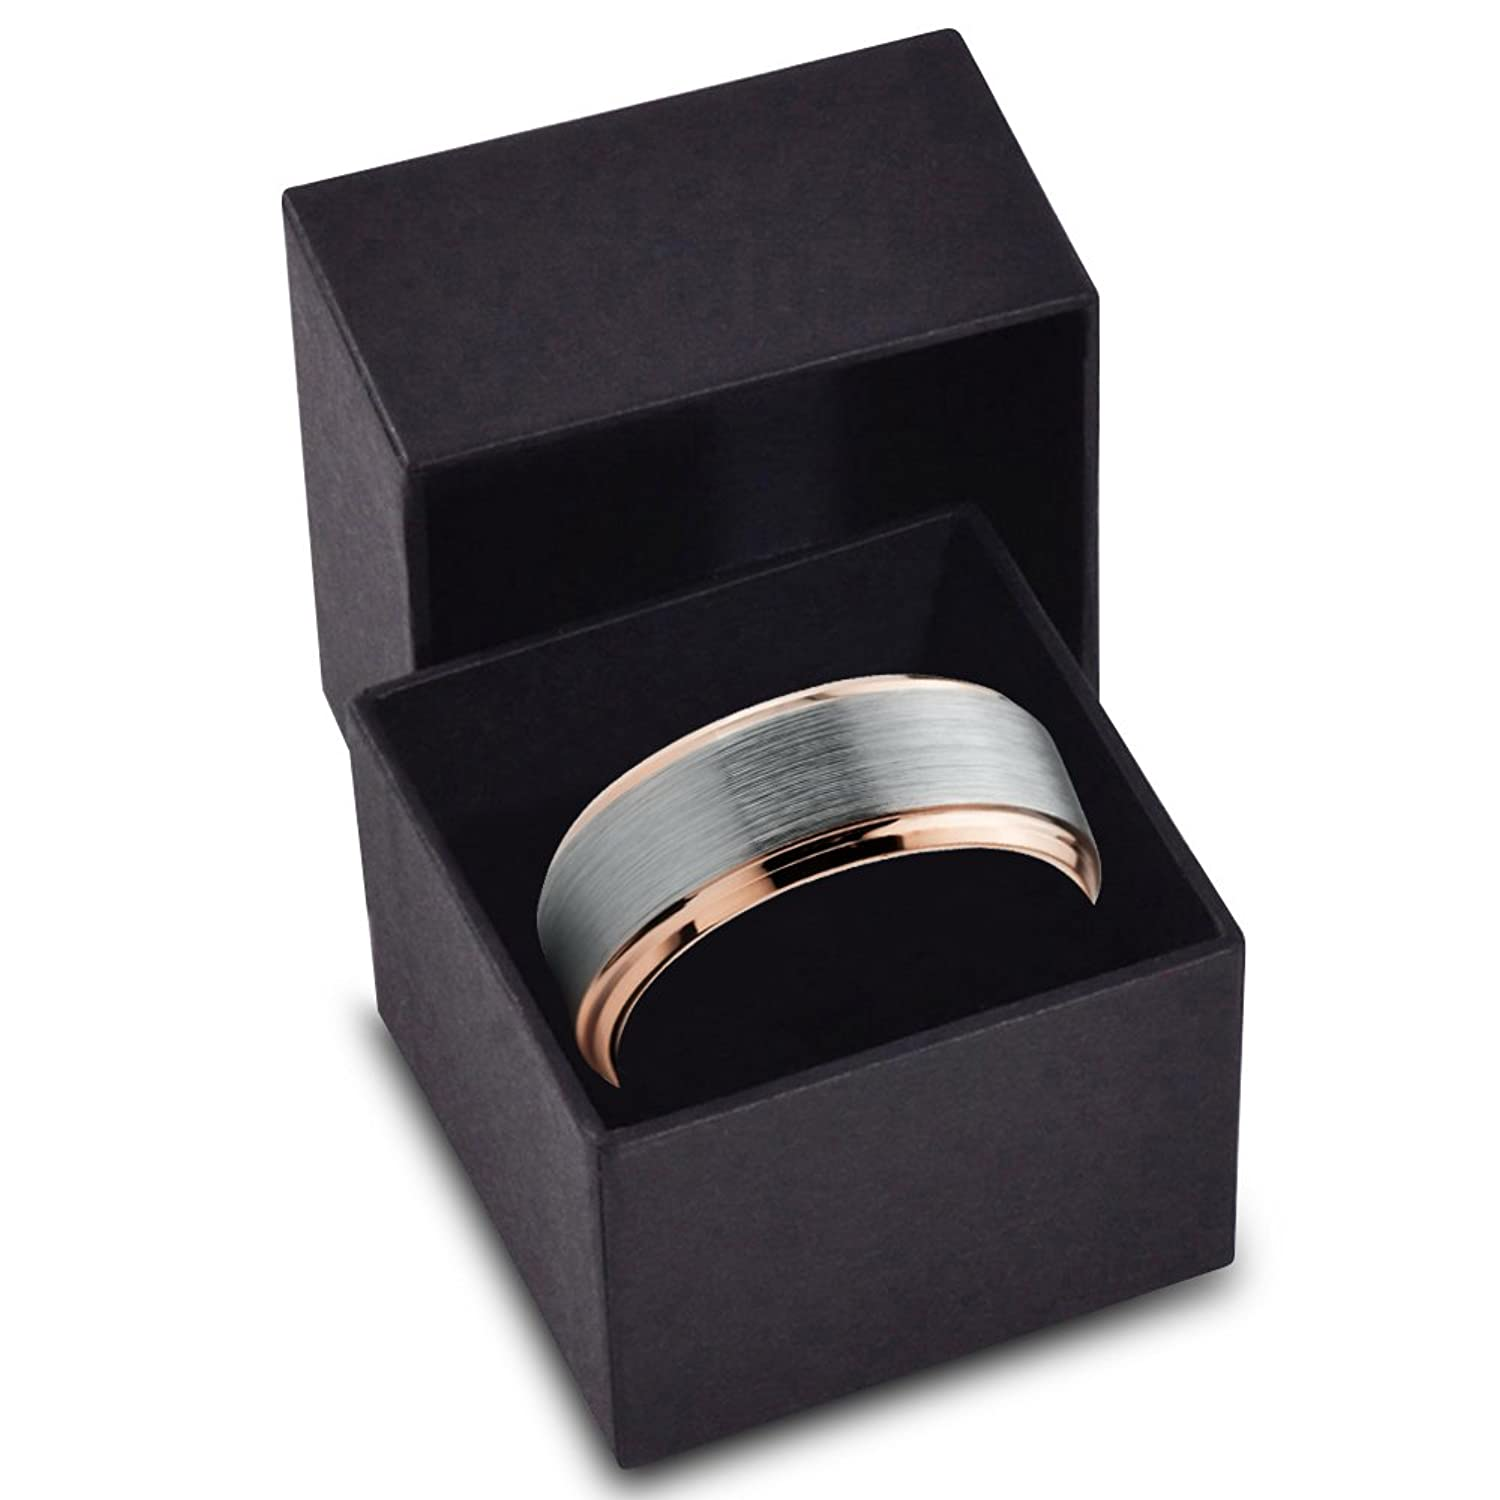 Bundle offer 18k gold plated amp white gold plated necklace 2 ring - Tungsten Wedding Band Ring 8mm For Men Women Comfort Fit 18k Rose Gold Plated Plated Beveled Edge Brushed Polished Amazon Com